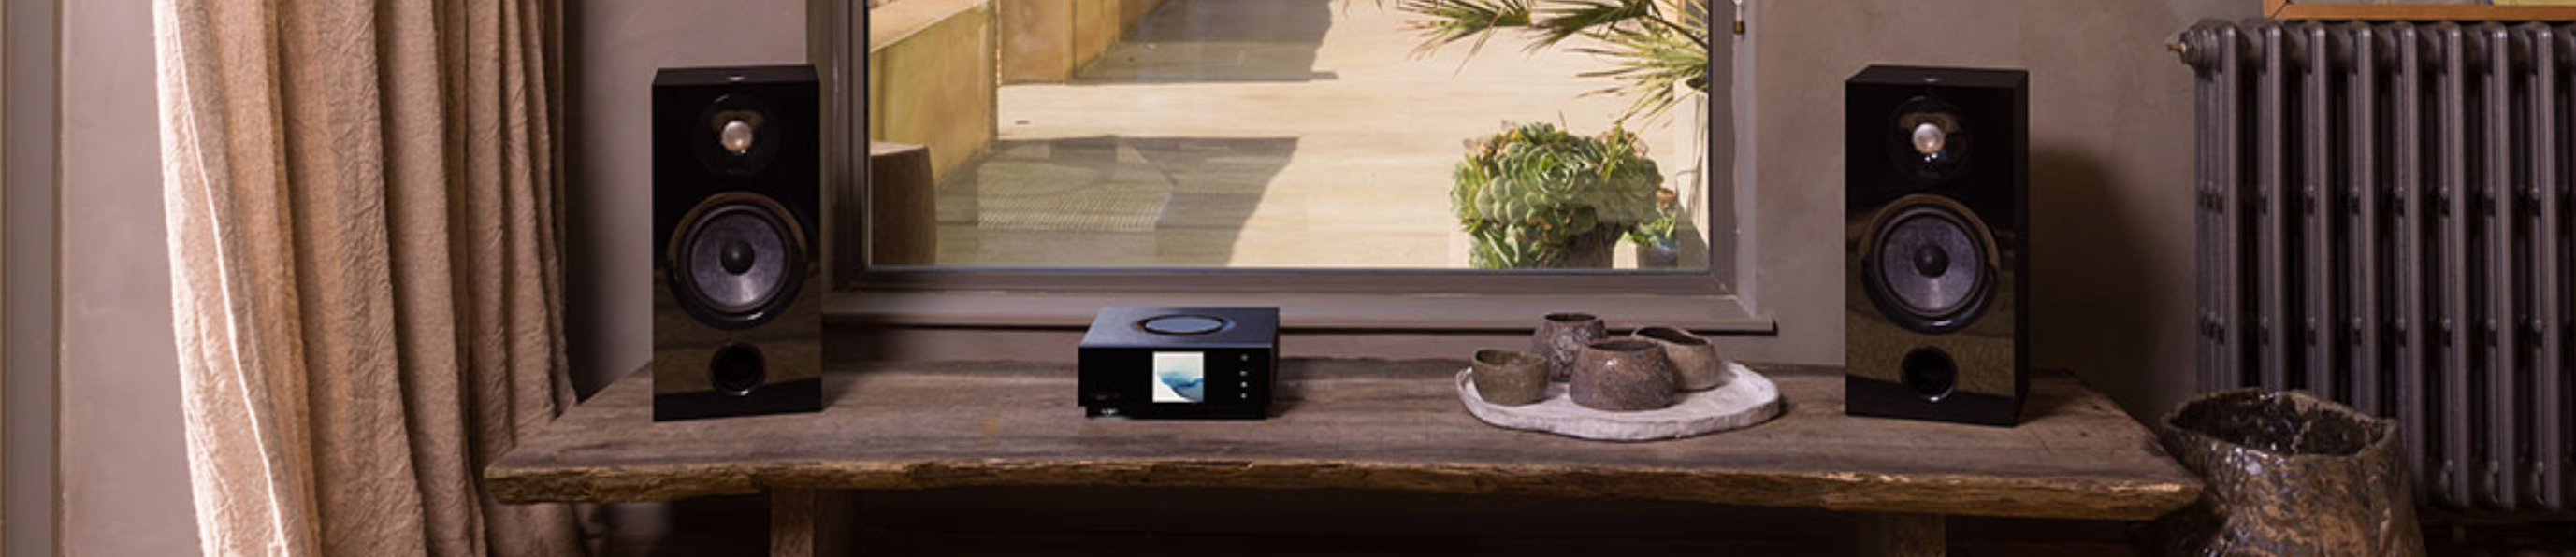 The award-winning Uniti all-in-one players are the smart but simple way to enjoy music, radio and better TV sound in any or every room. They expertly handle top music-streaming services (Spotify, Apple Music, TIDAL, Qobuz...) plus offer easy Apple AirPlay 2, Chromecast built-in and Bluetooth playback.